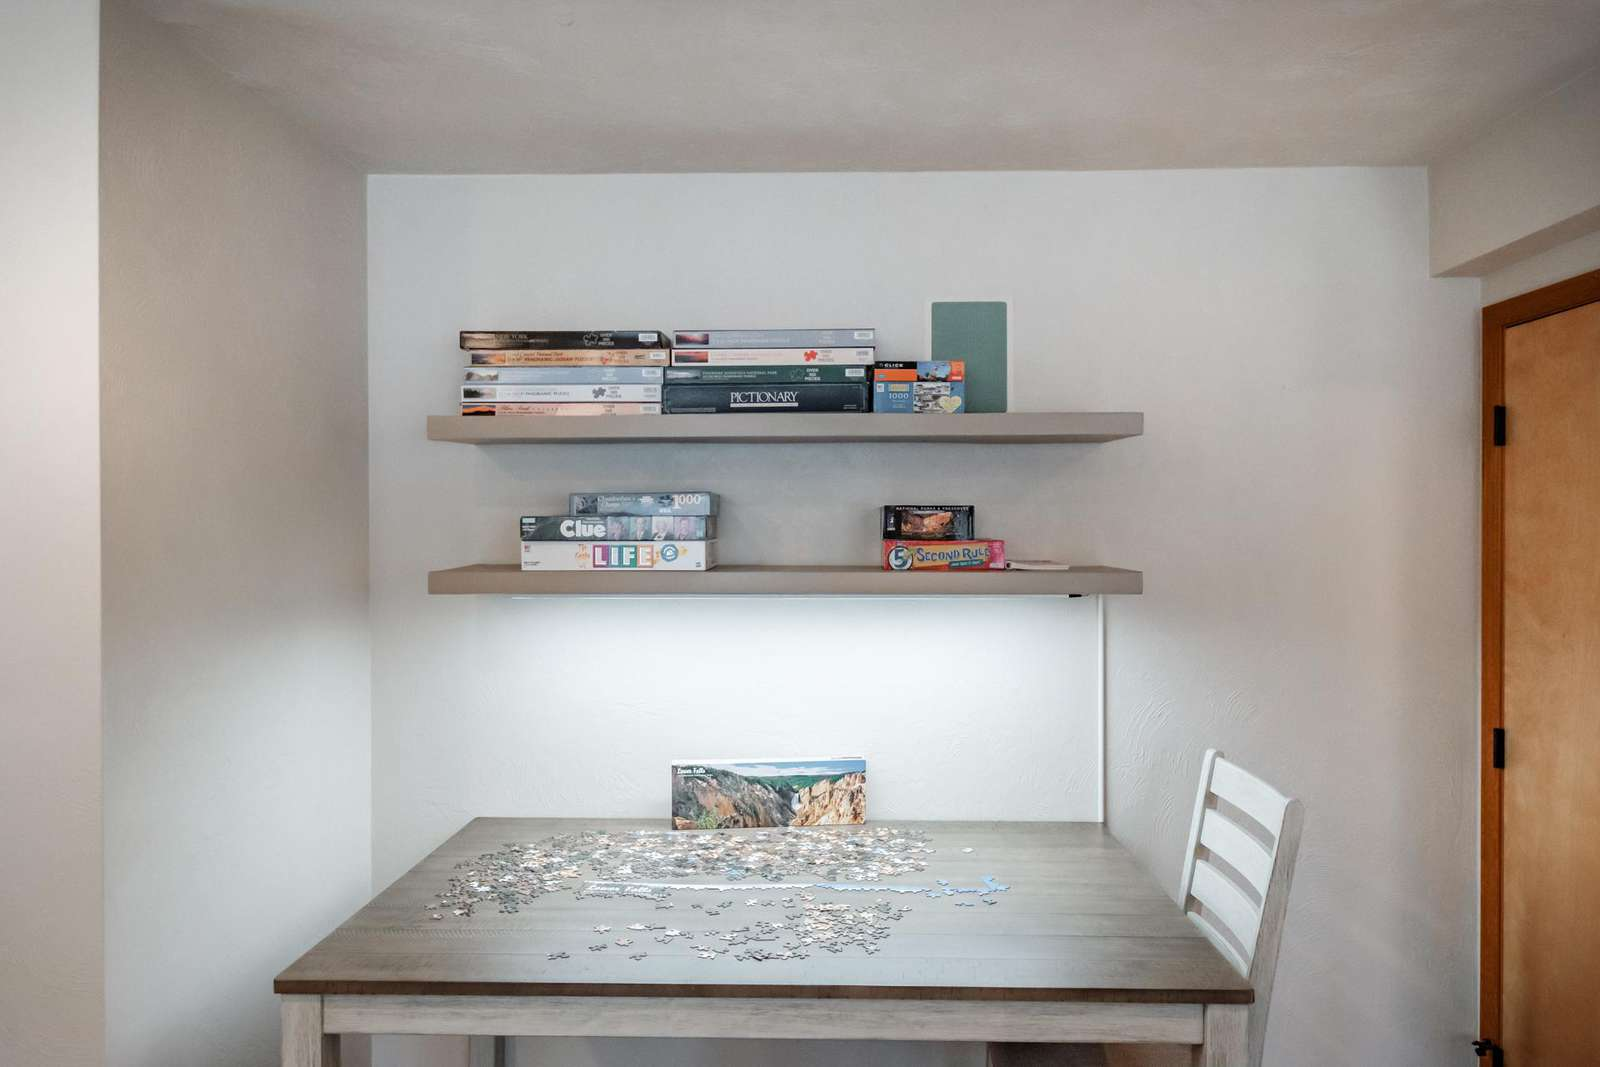 Puzzle table - We always have an interesting puzzle going- Come join in!